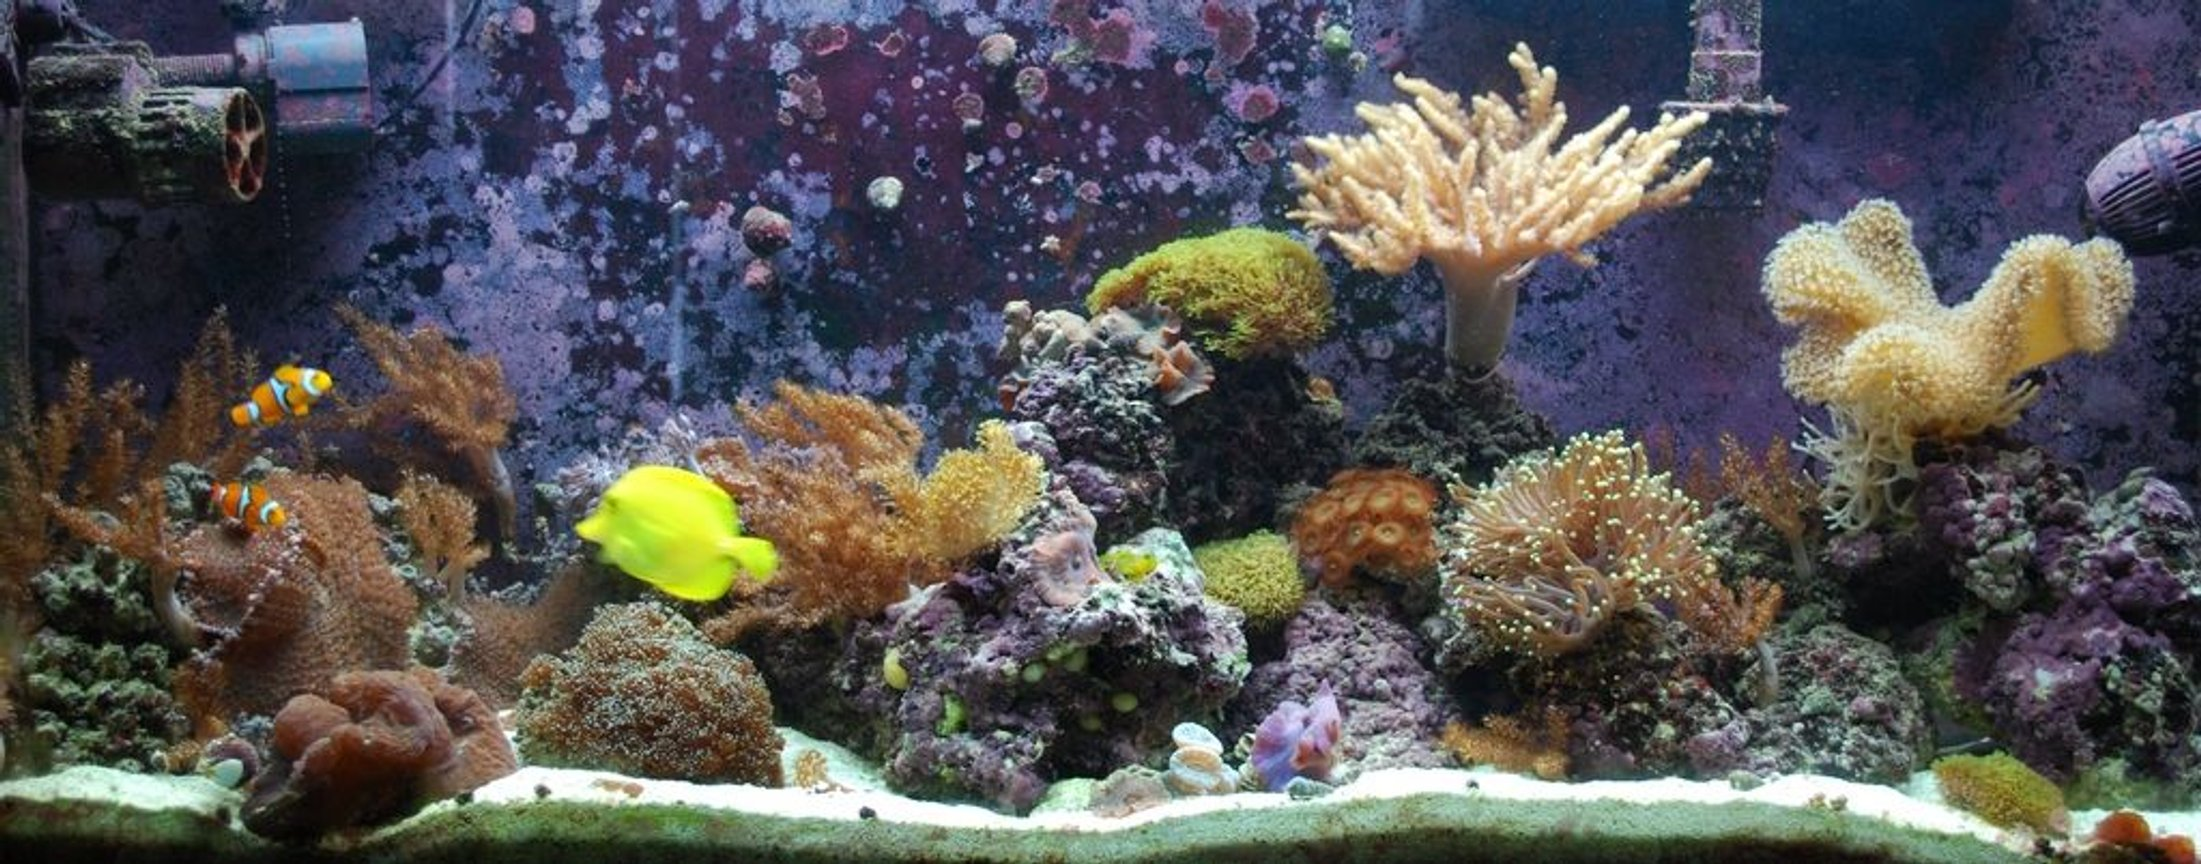 55 gallons reef tank (mostly live coral and fish) - My newest FTS of my softy and LPS dominated reef tank